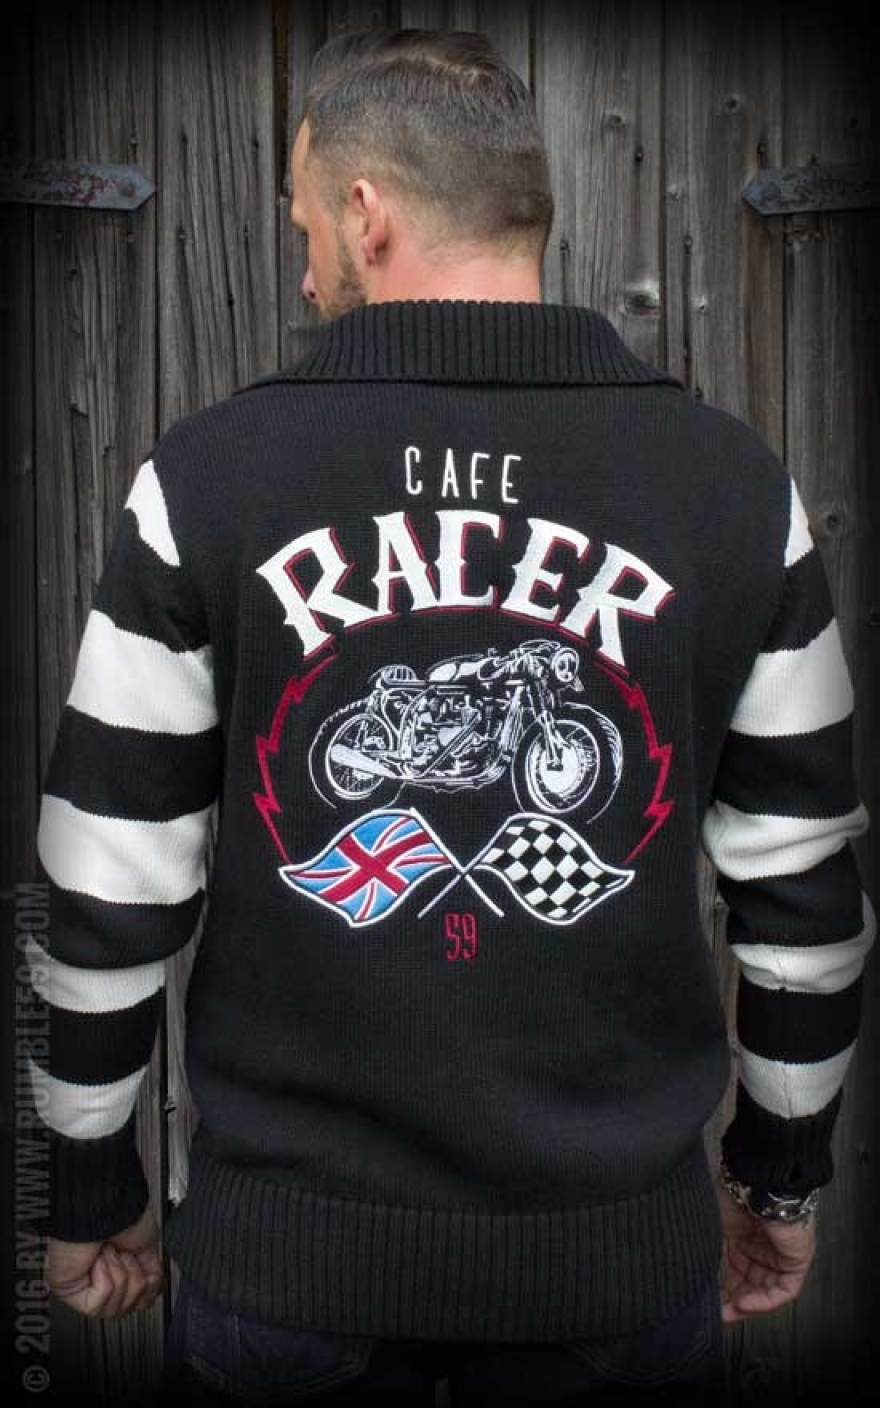 rumble59 racing sweater cafe racer rockabilly rules. Black Bedroom Furniture Sets. Home Design Ideas